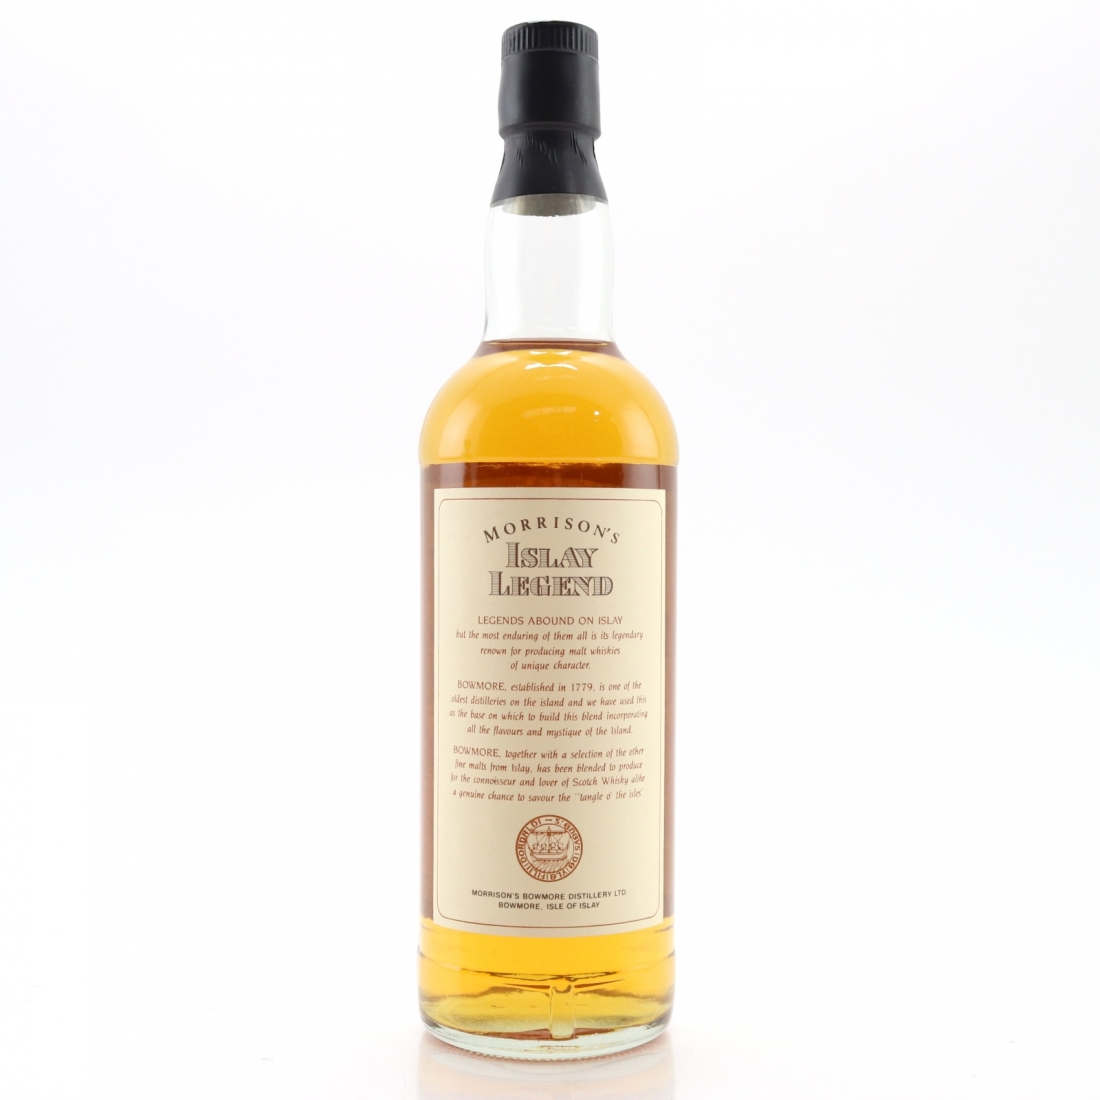 Morrisons' Islay Legend 8 Year Old Scotch Whisky